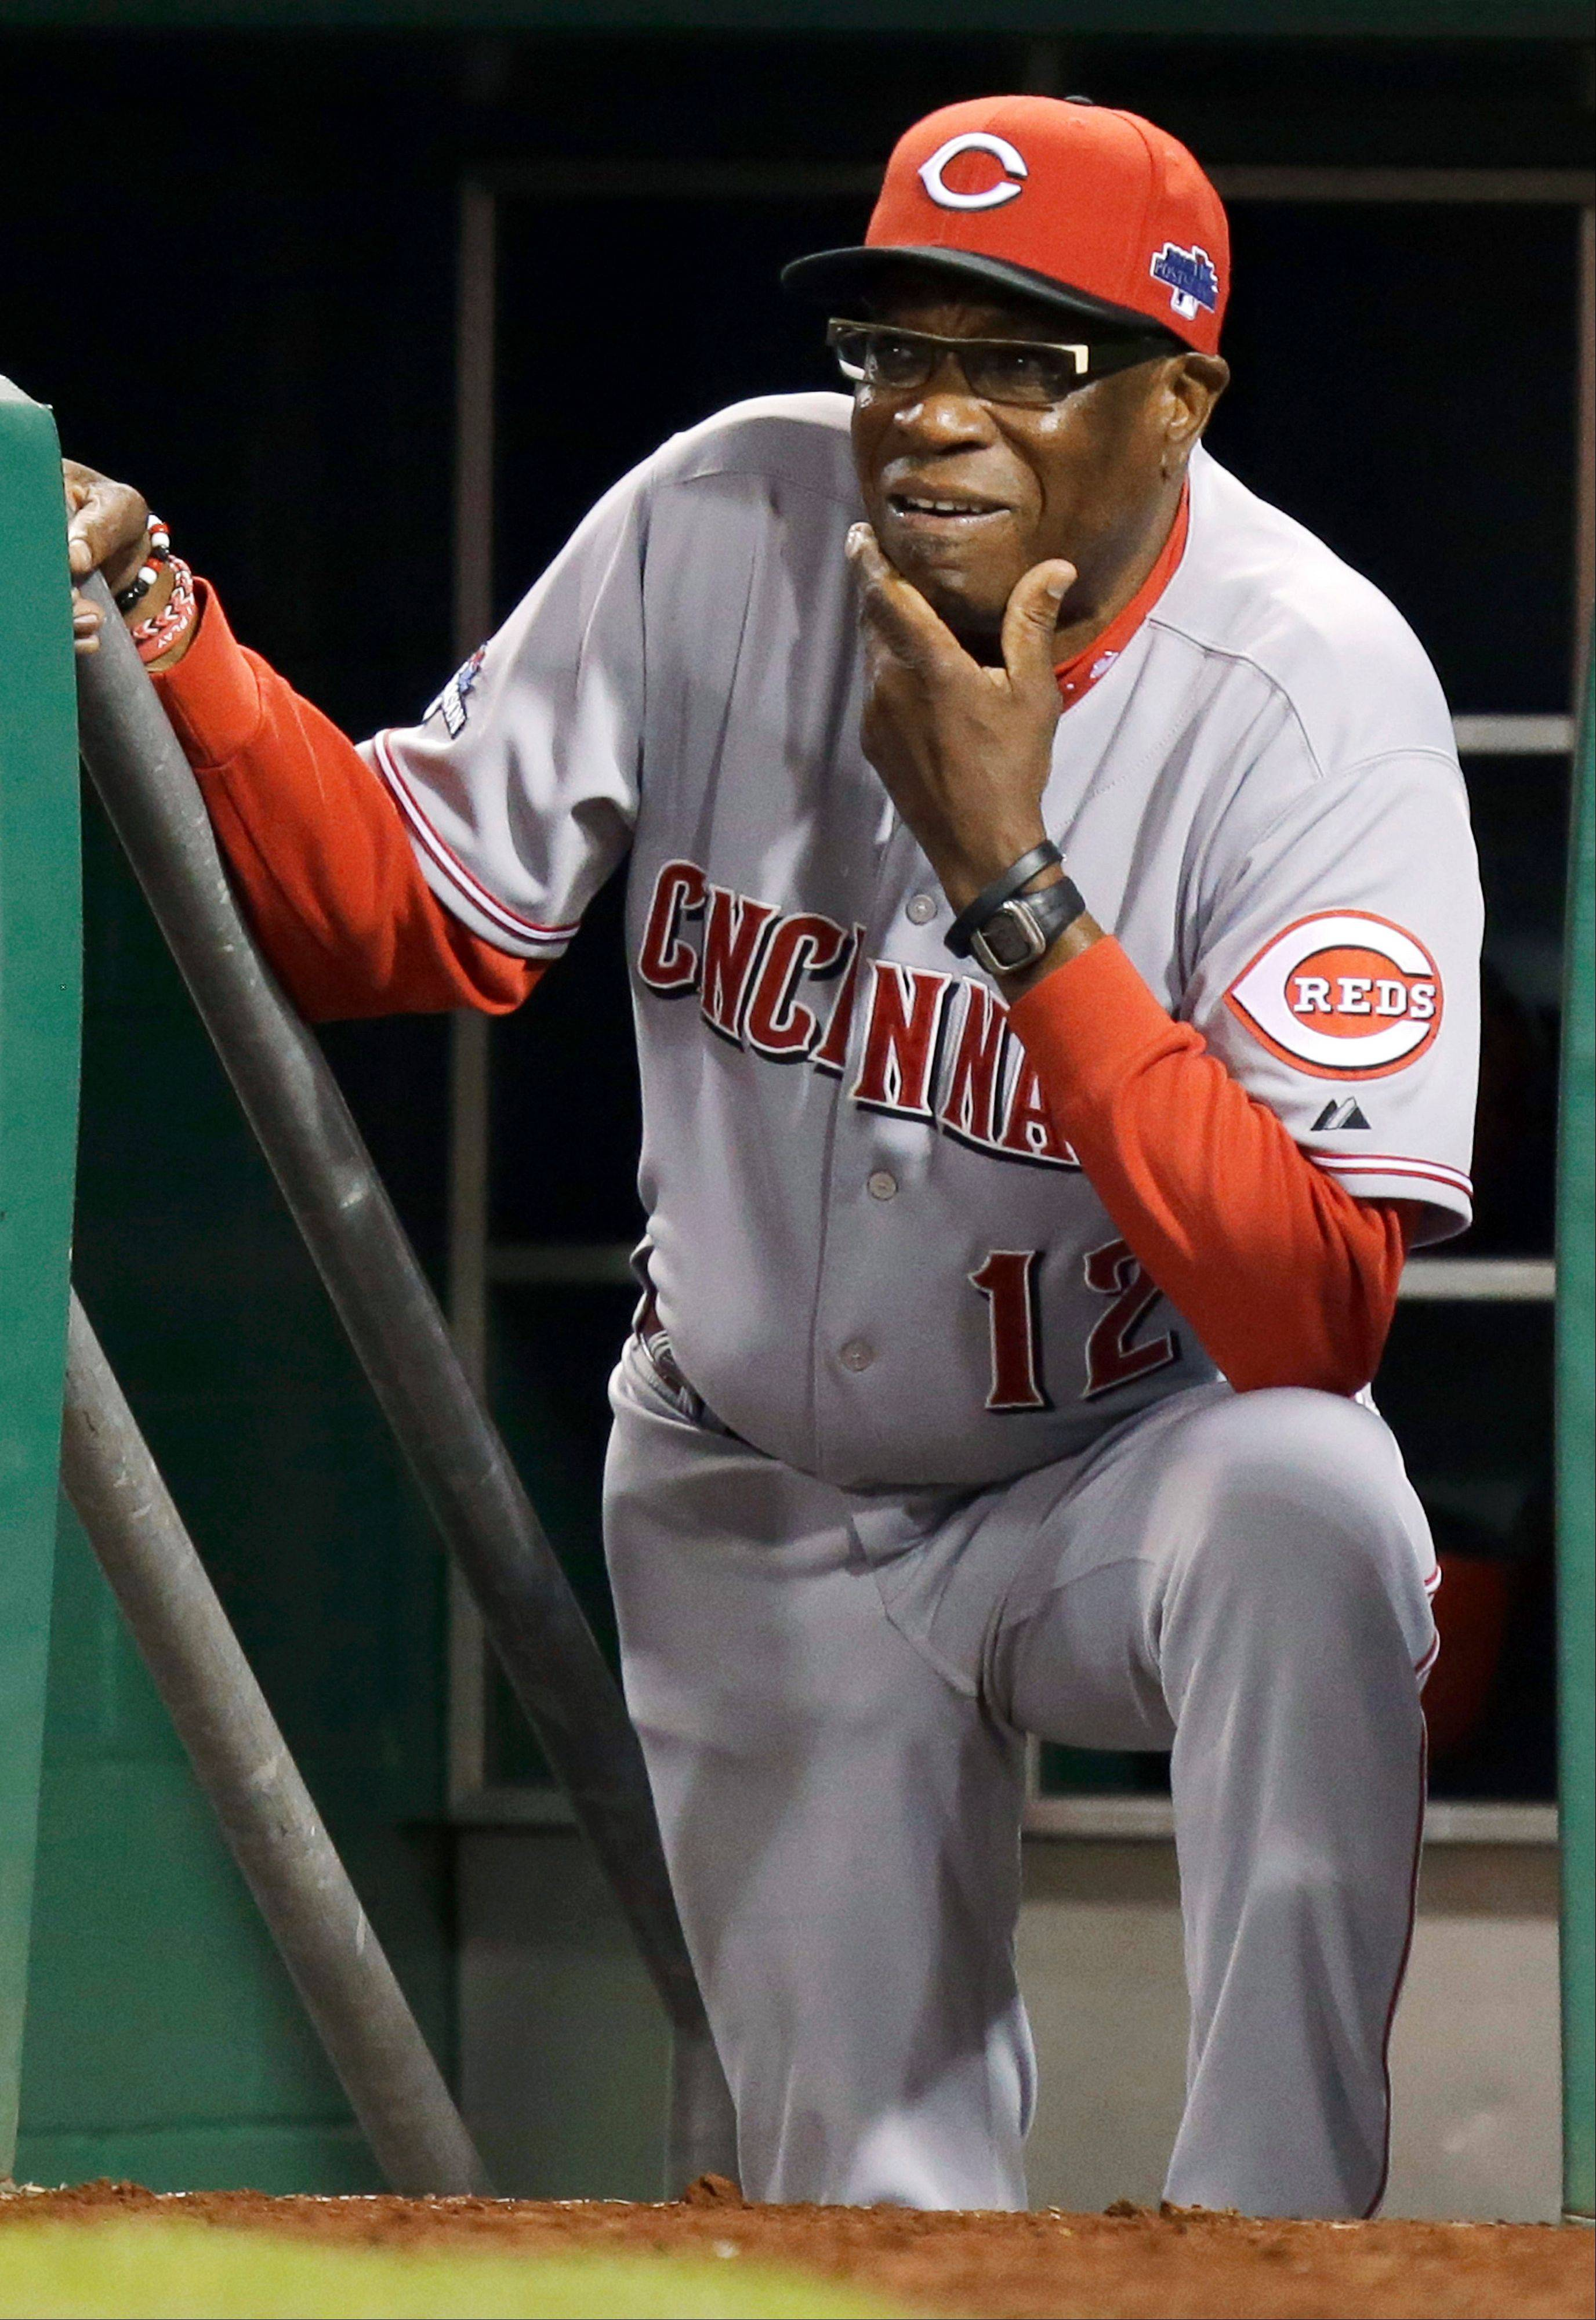 Cincinnati Reds manager Dusty Baker watches from the dugout steps as the Pittsburgh Pirates bat in the fifth inning of the NL wild-card playoff baseball game Tuesday, Oct. 1, 2013, in Pittsburgh. (AP Photo/Gene J. Puskar)